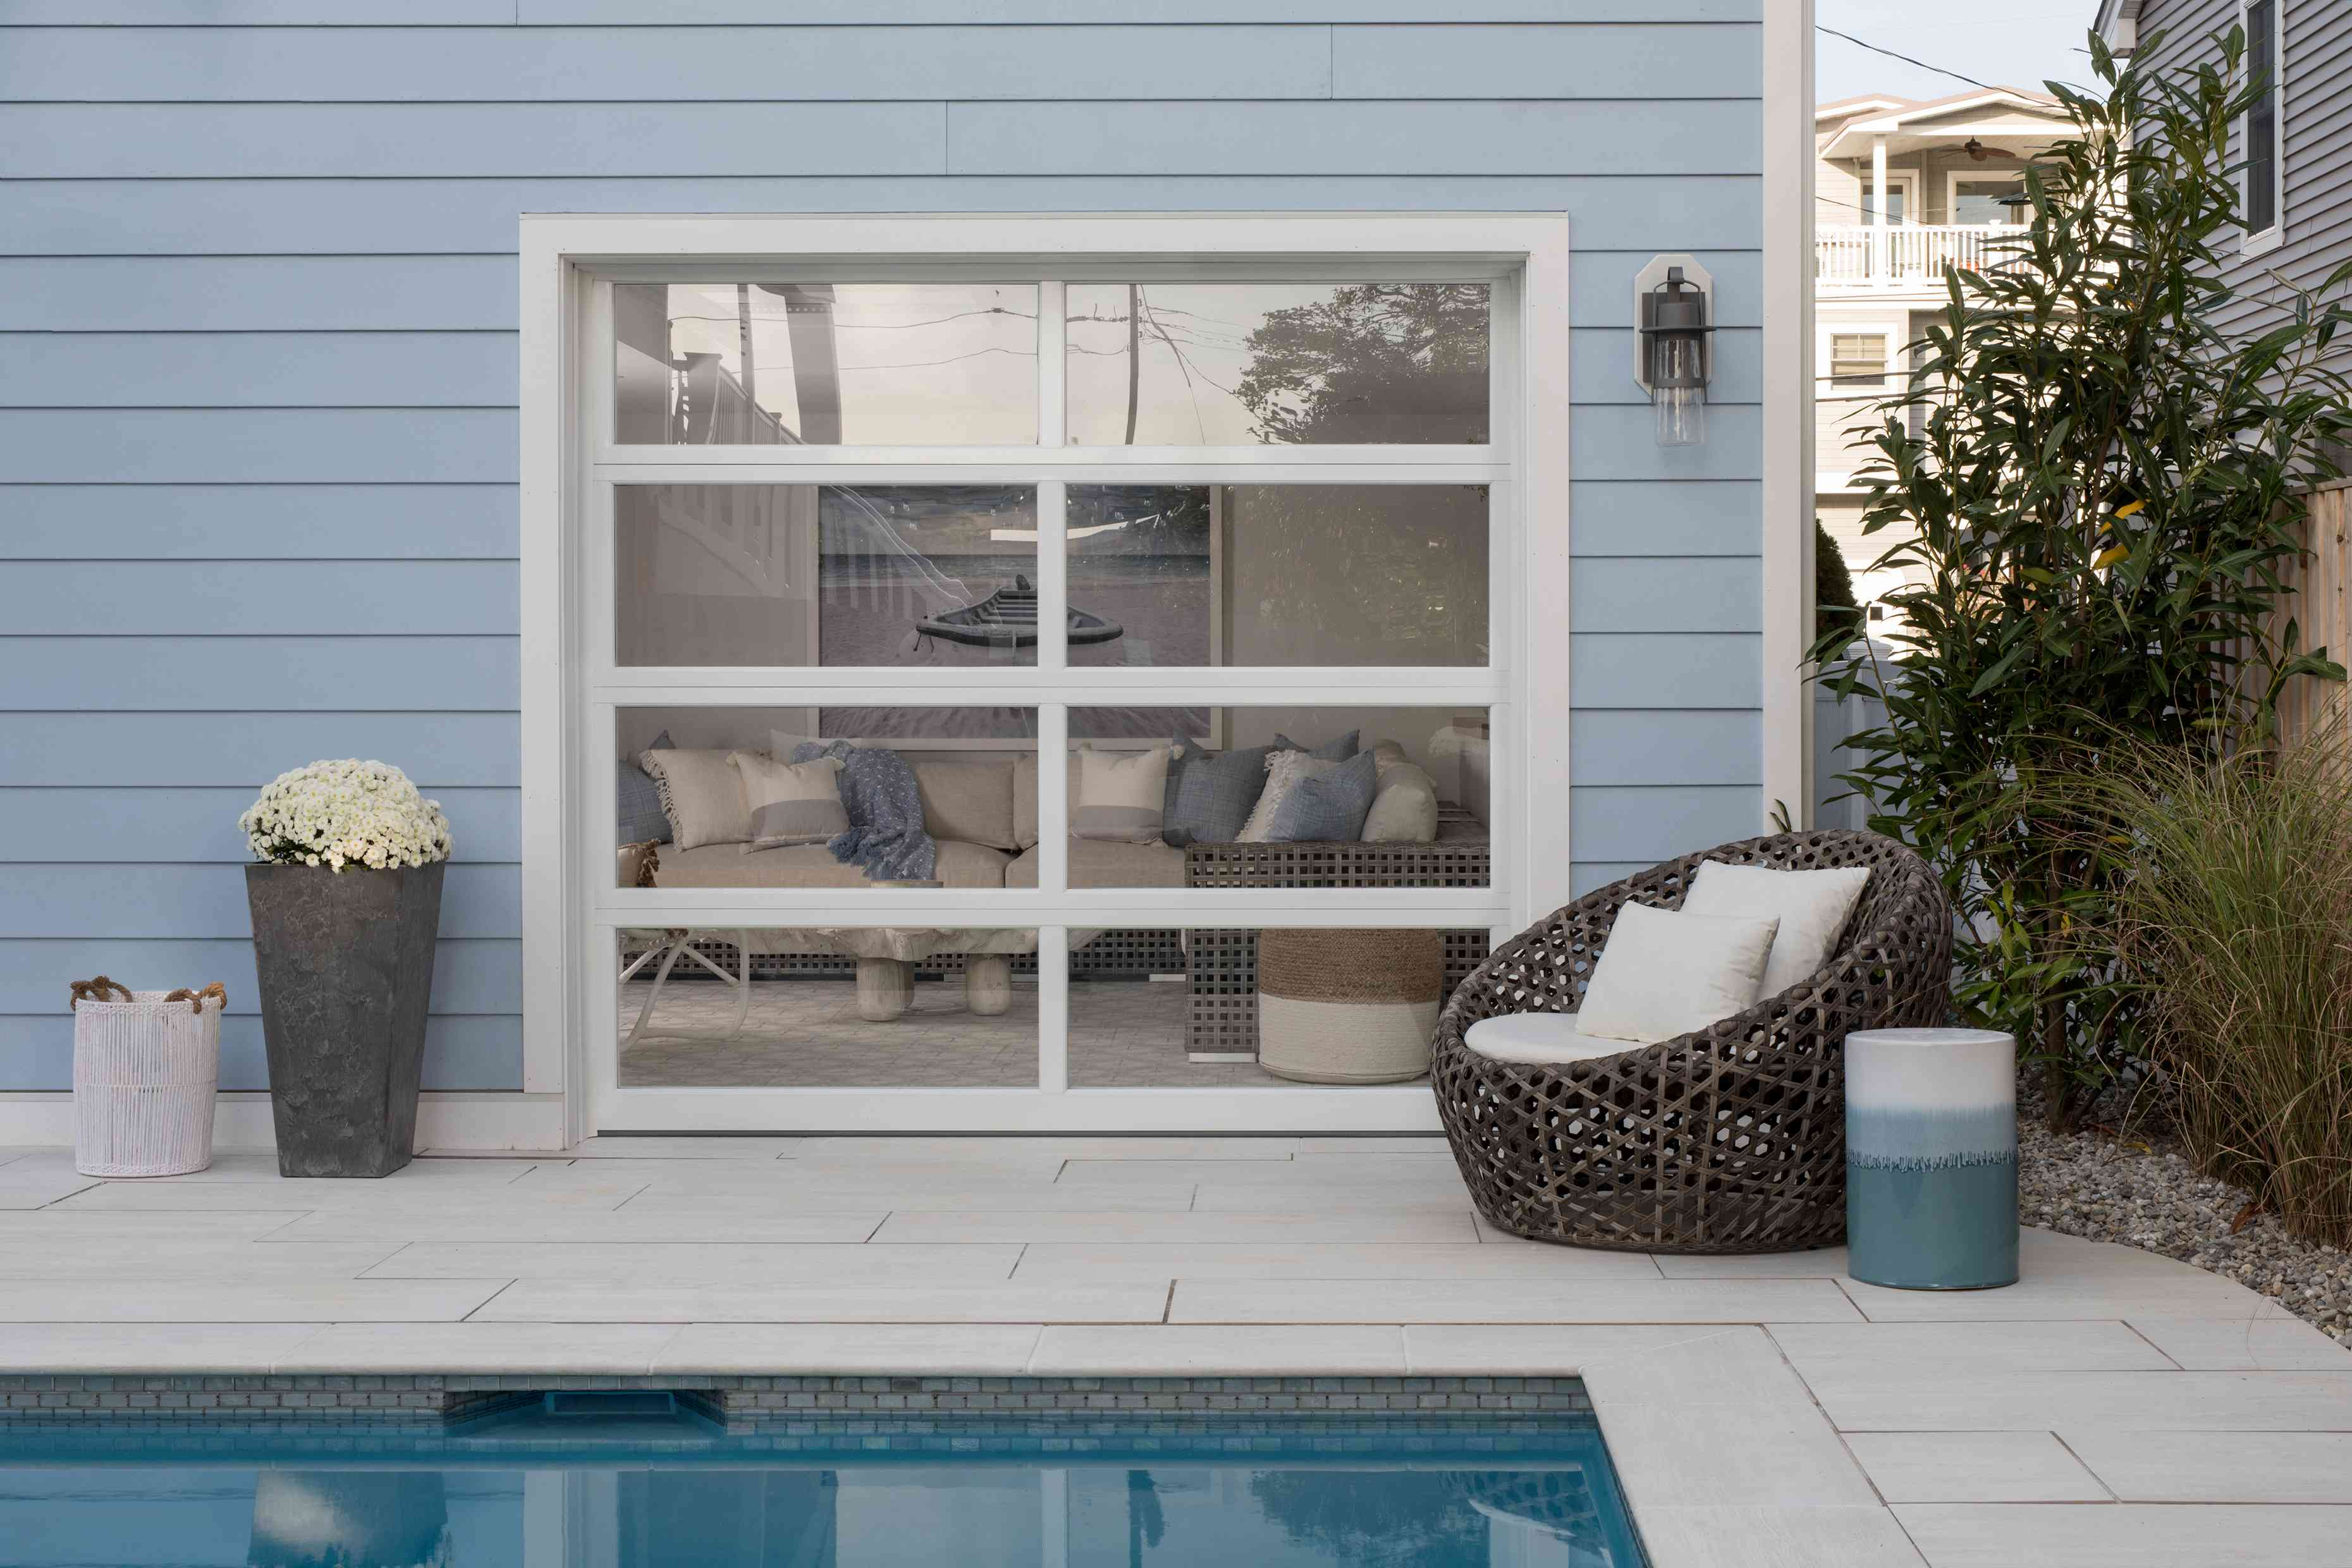 The lanai leads to a pool at the Long Beach Island home of Karen B. Wolfe